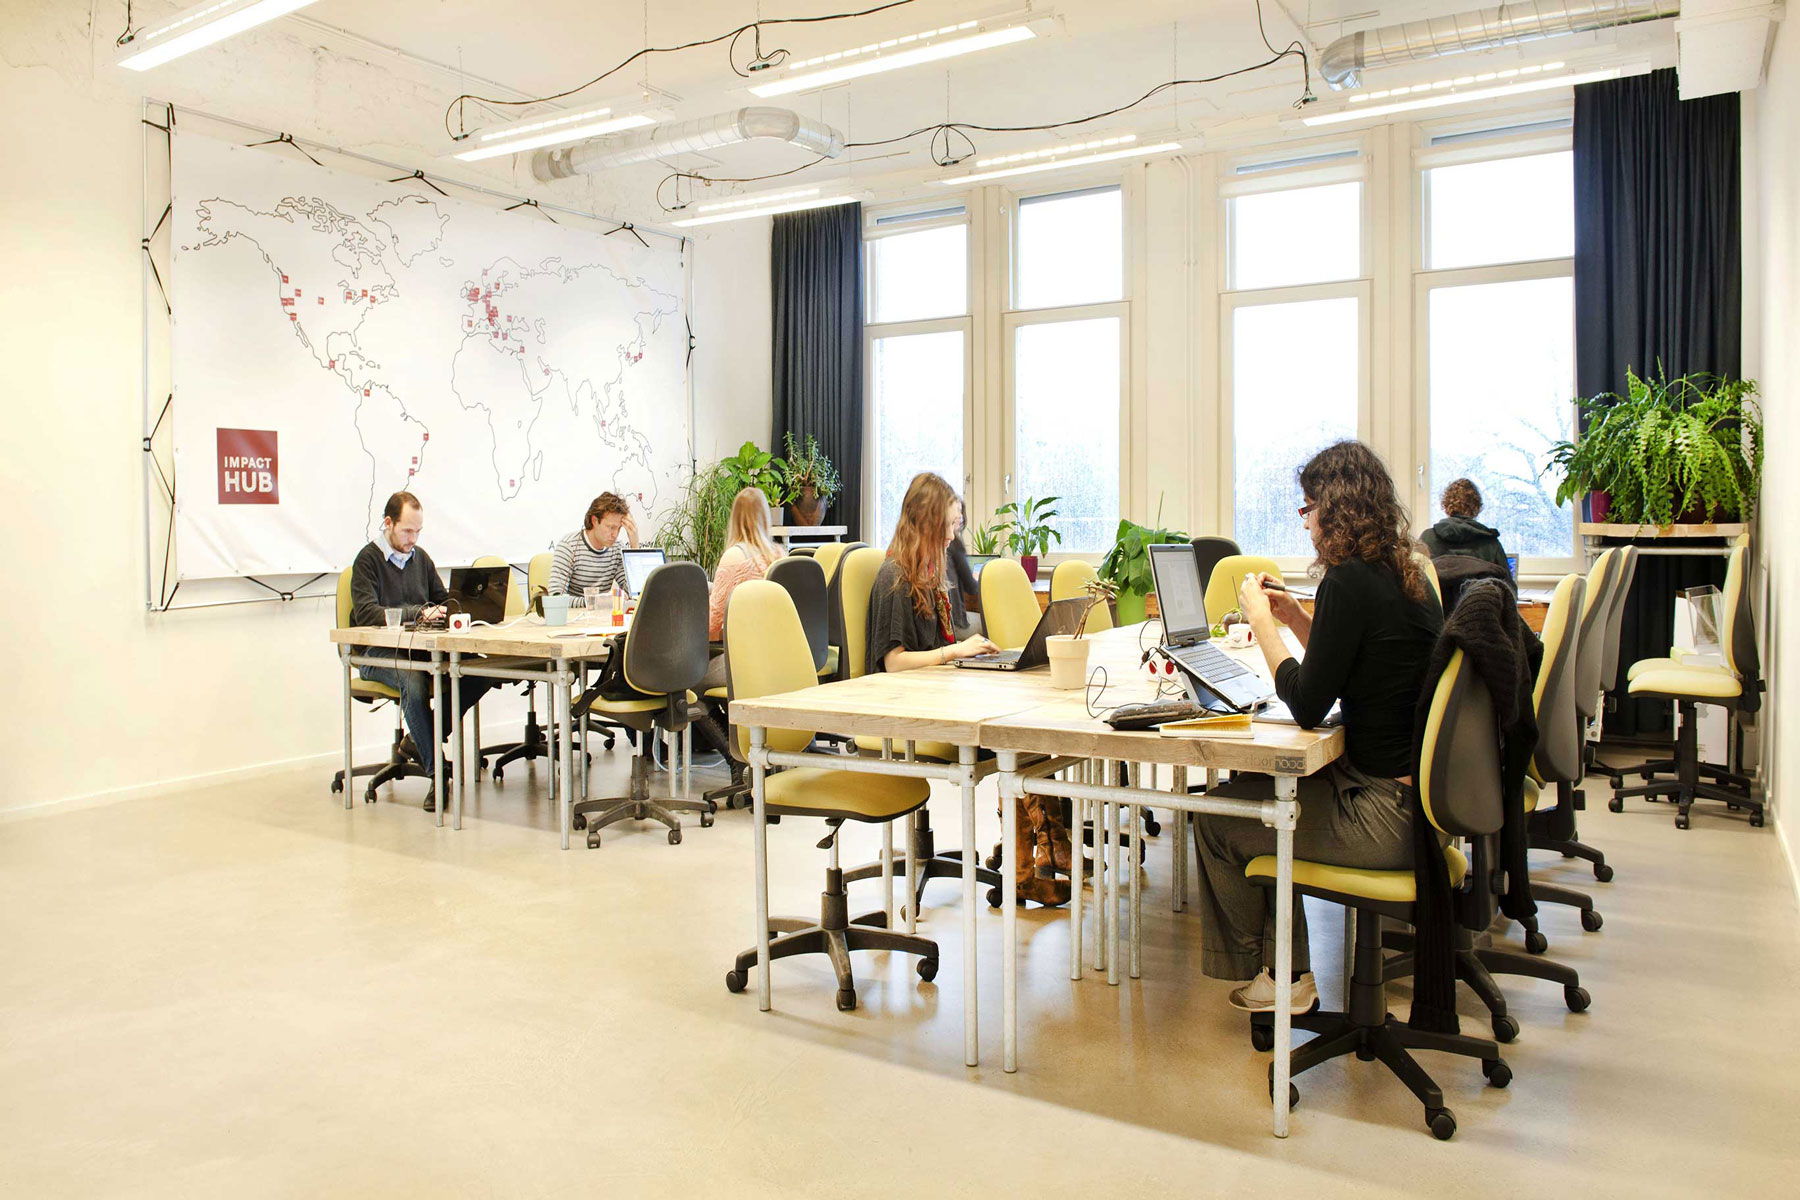 Impact Hub Westerpark | Coworking Space - AKKA Architects